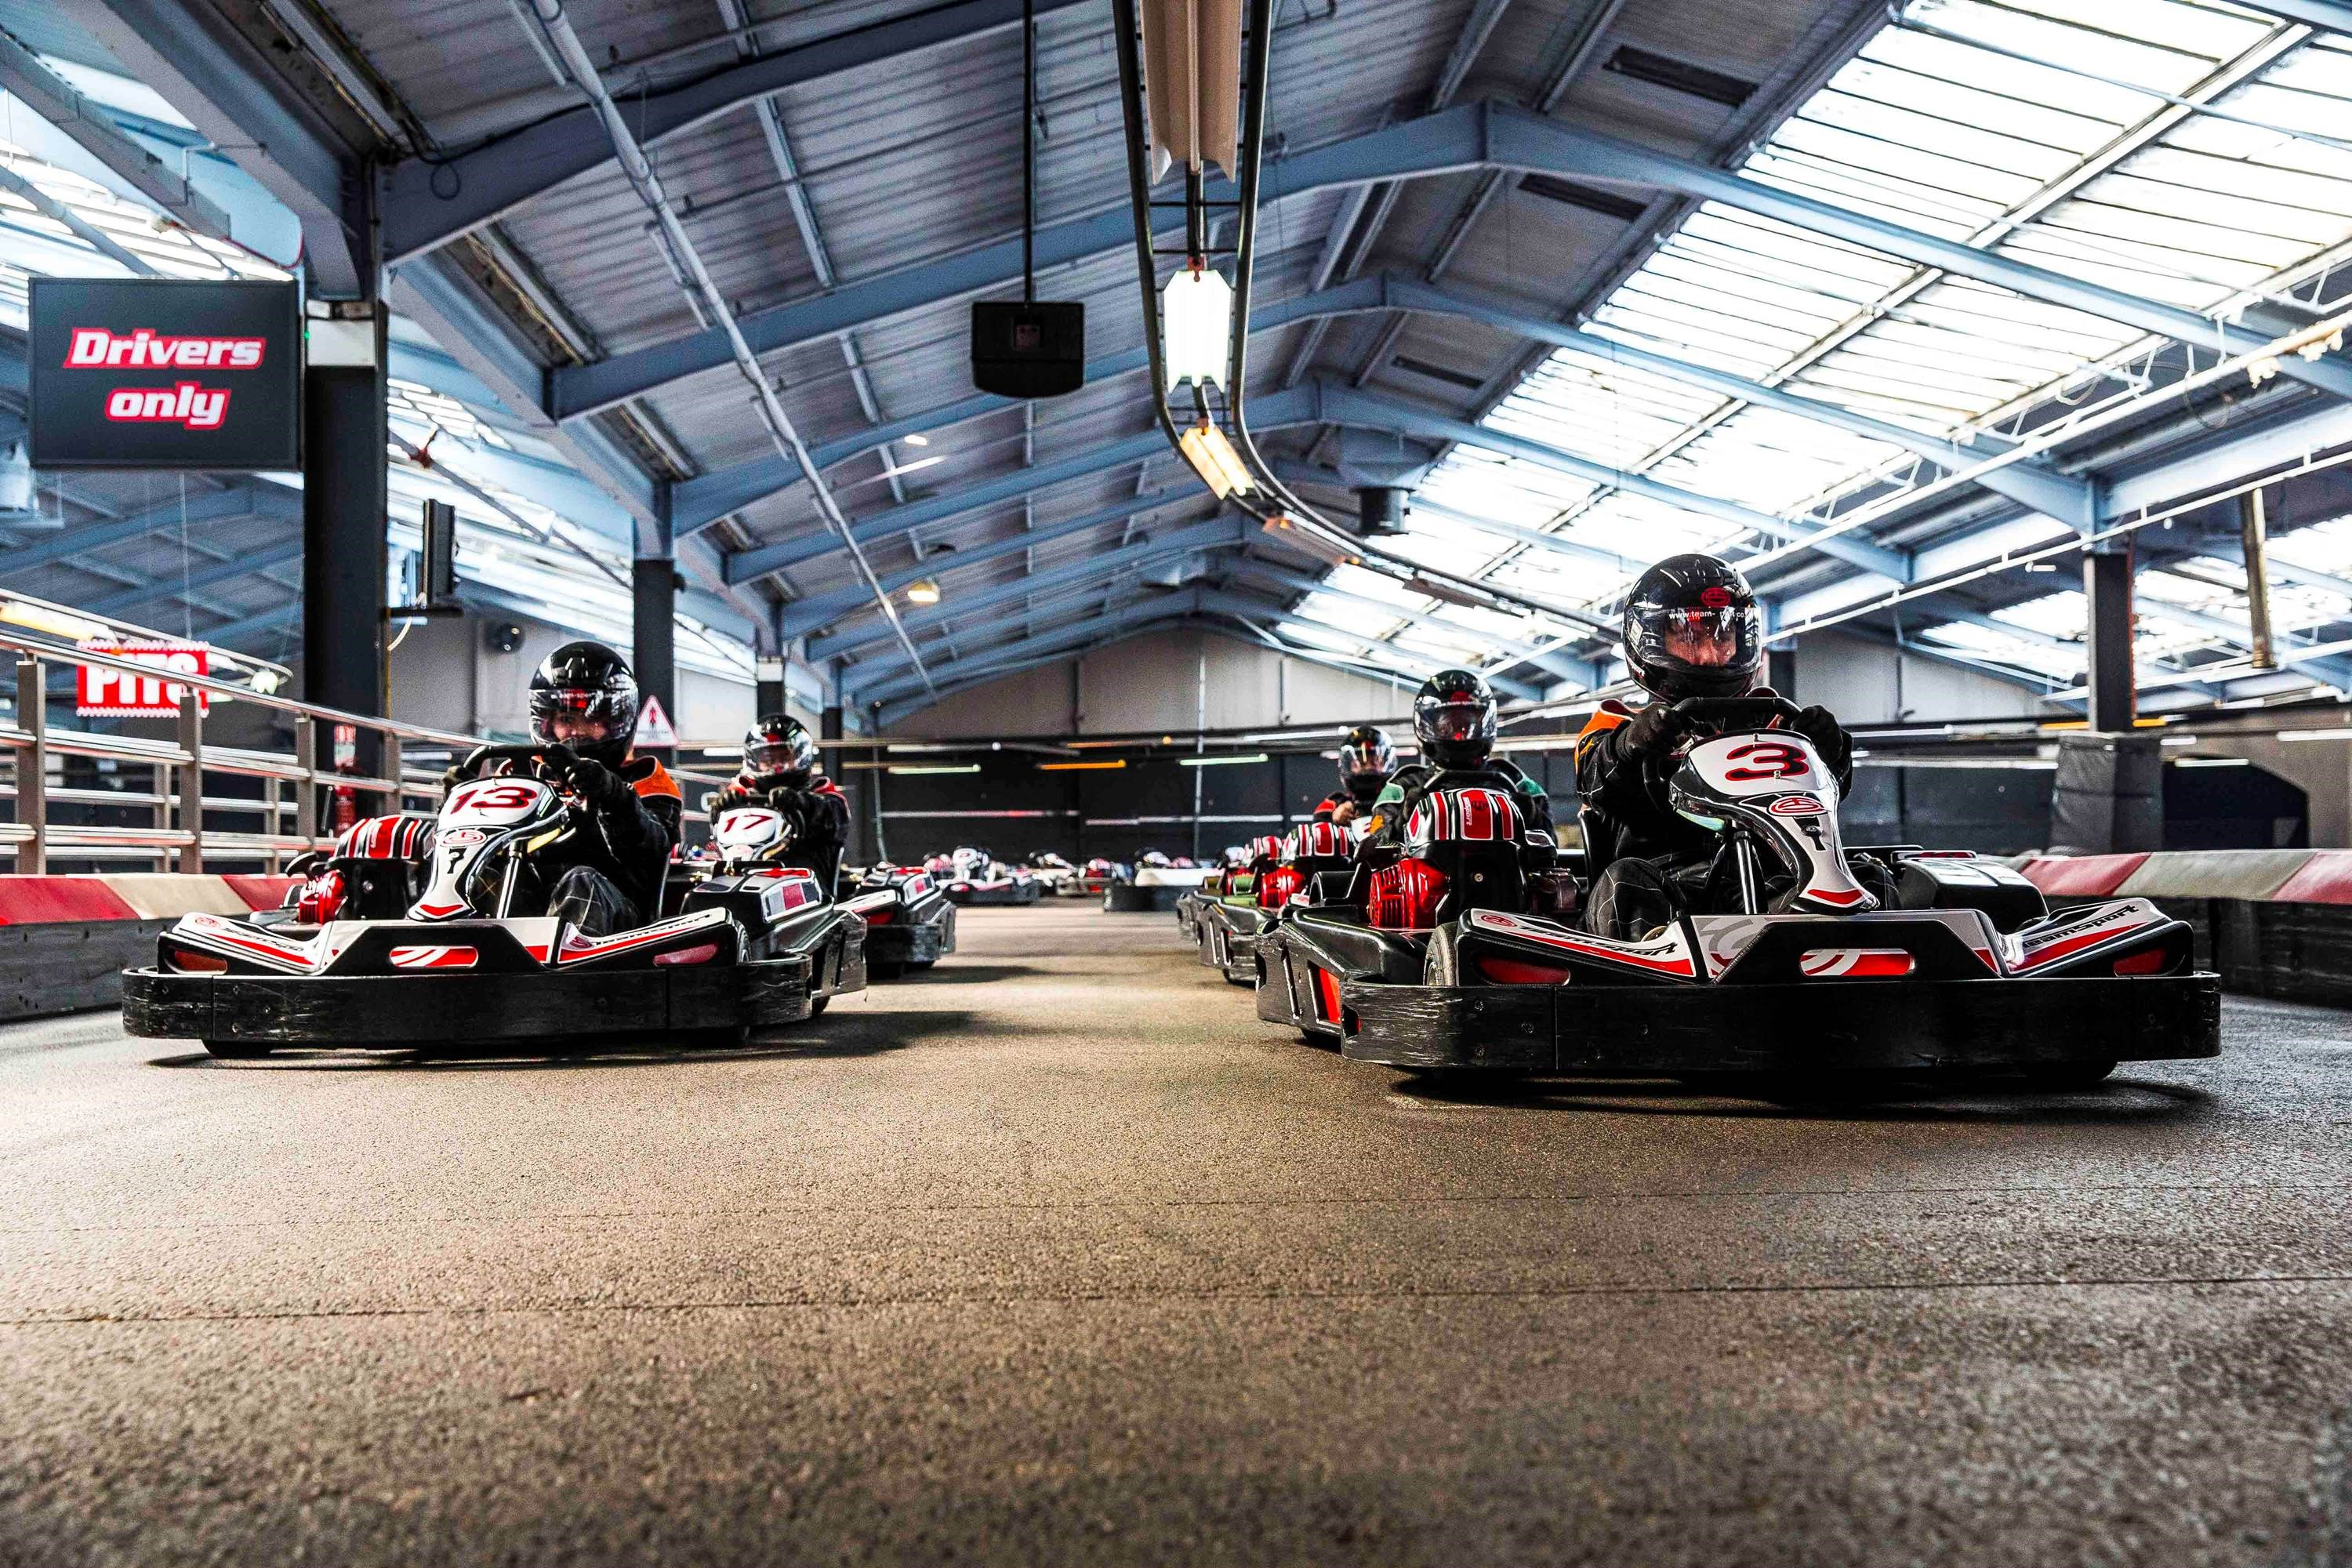 GROUP GO KARTING - GRAND PRIX EVENTS